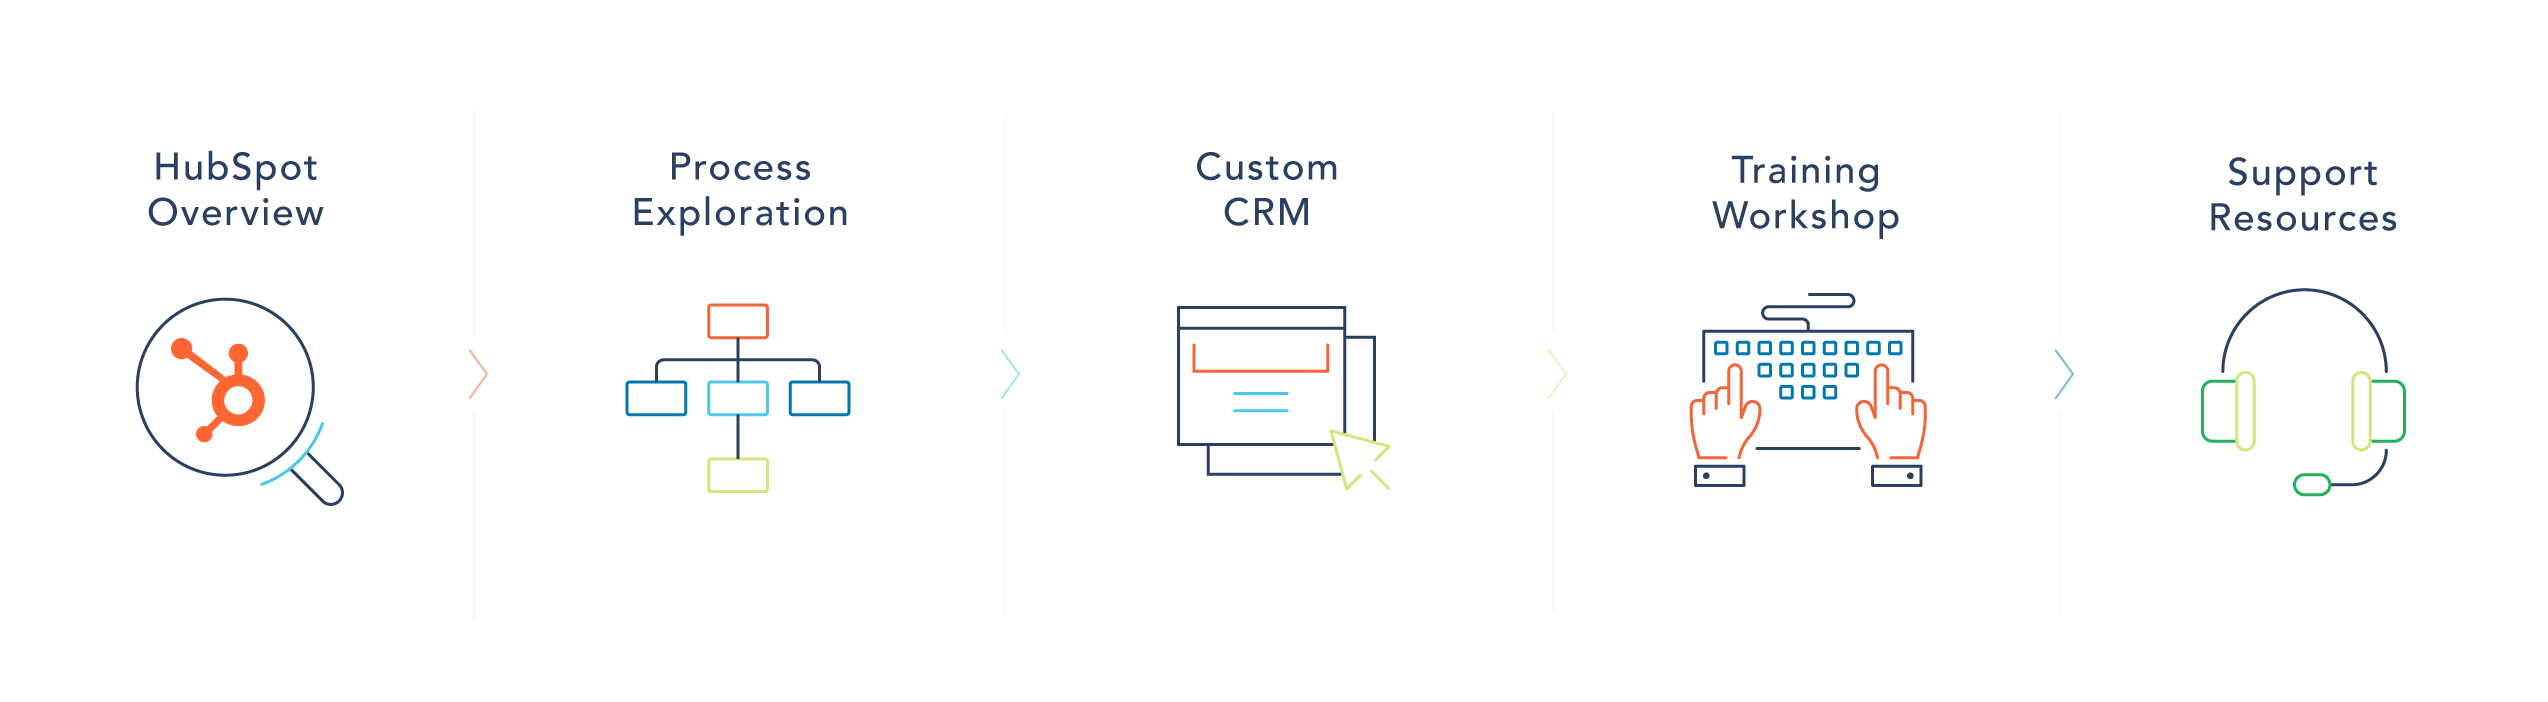 HubSpot CRM Implementation process described with line icons